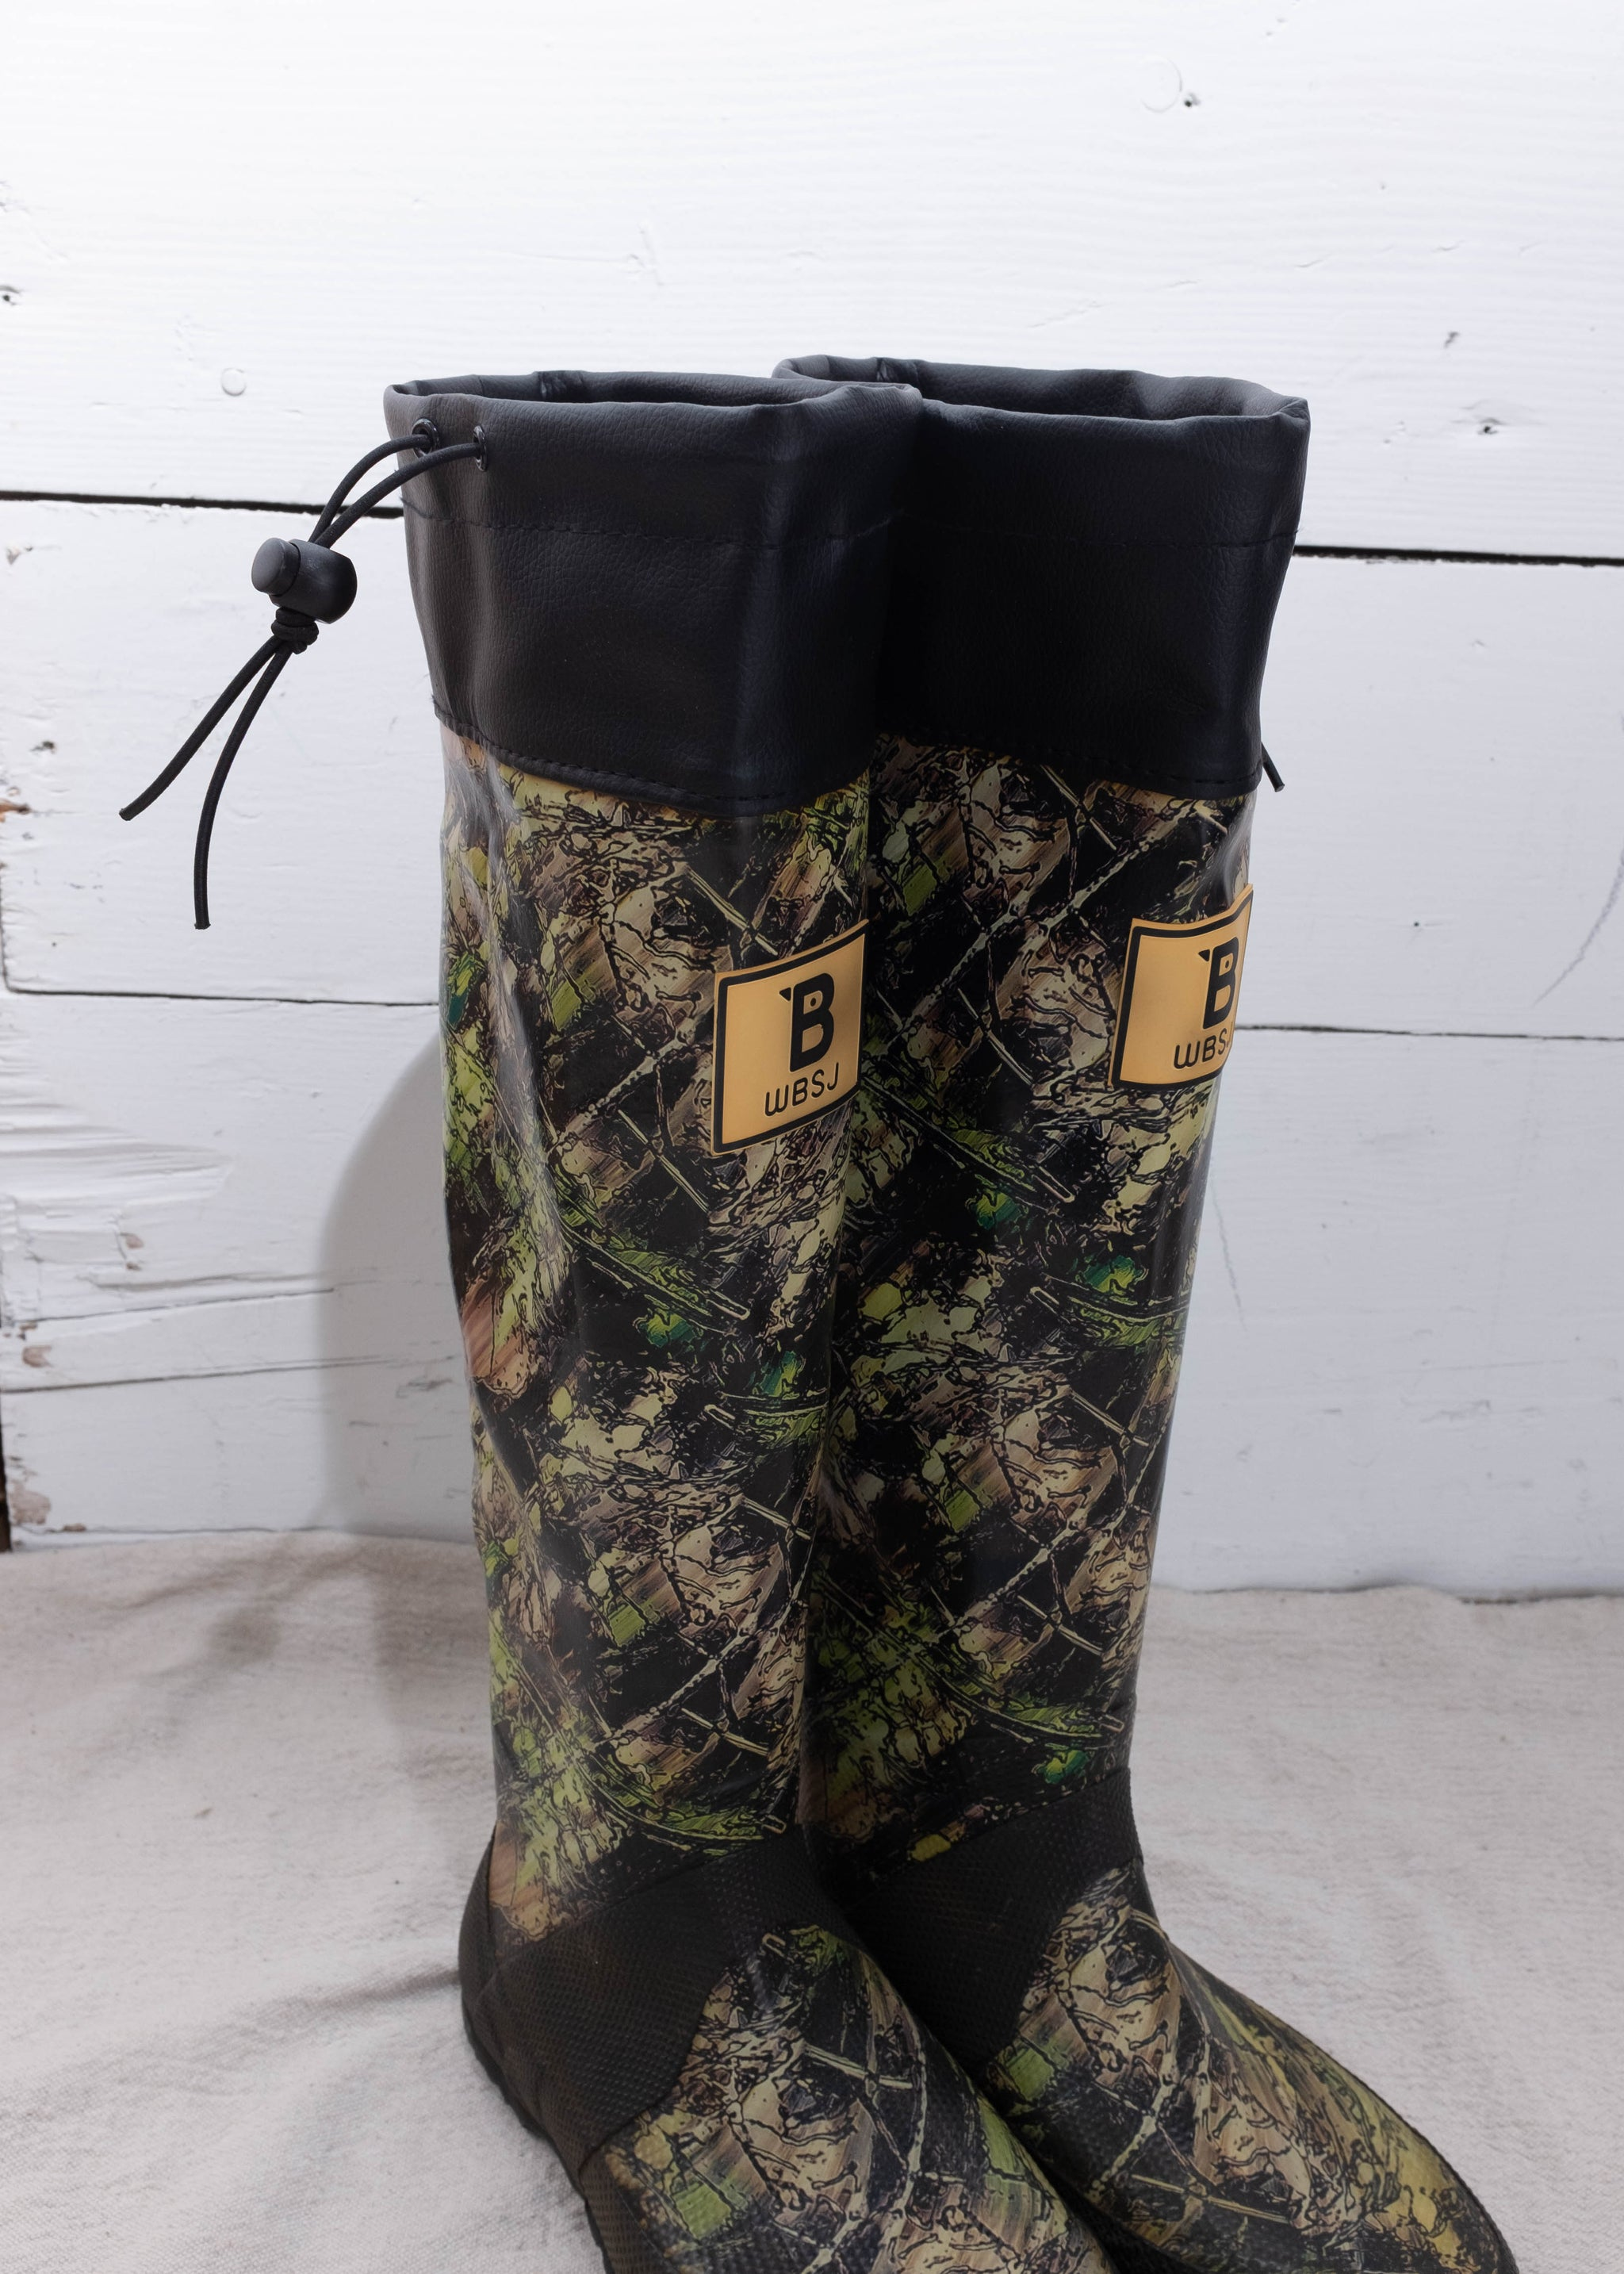 Printed heavy duty rain boots with drawstring.